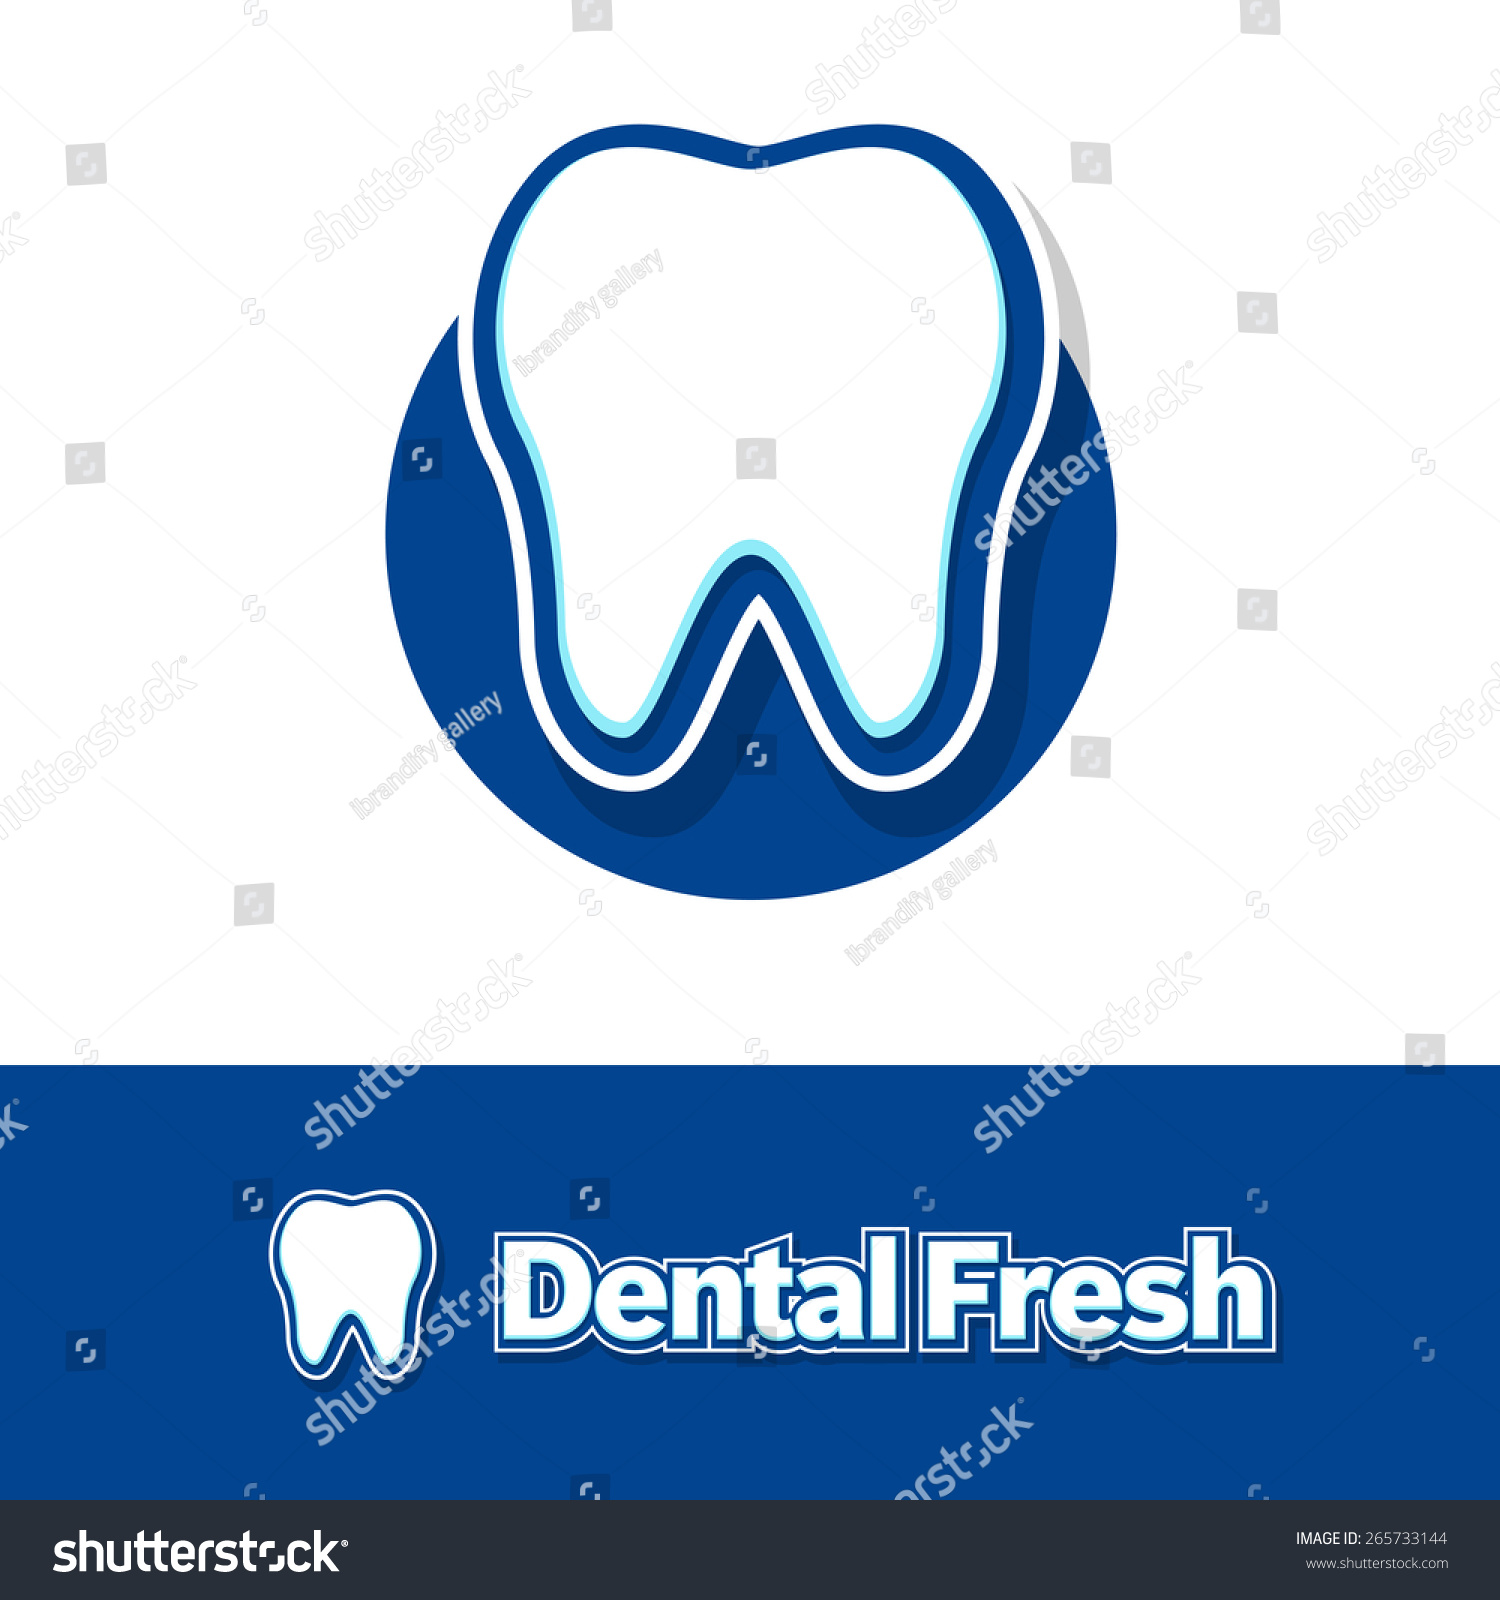 Dental Logo Design Creative Dentist Logo Stock Vector 265733144 ...